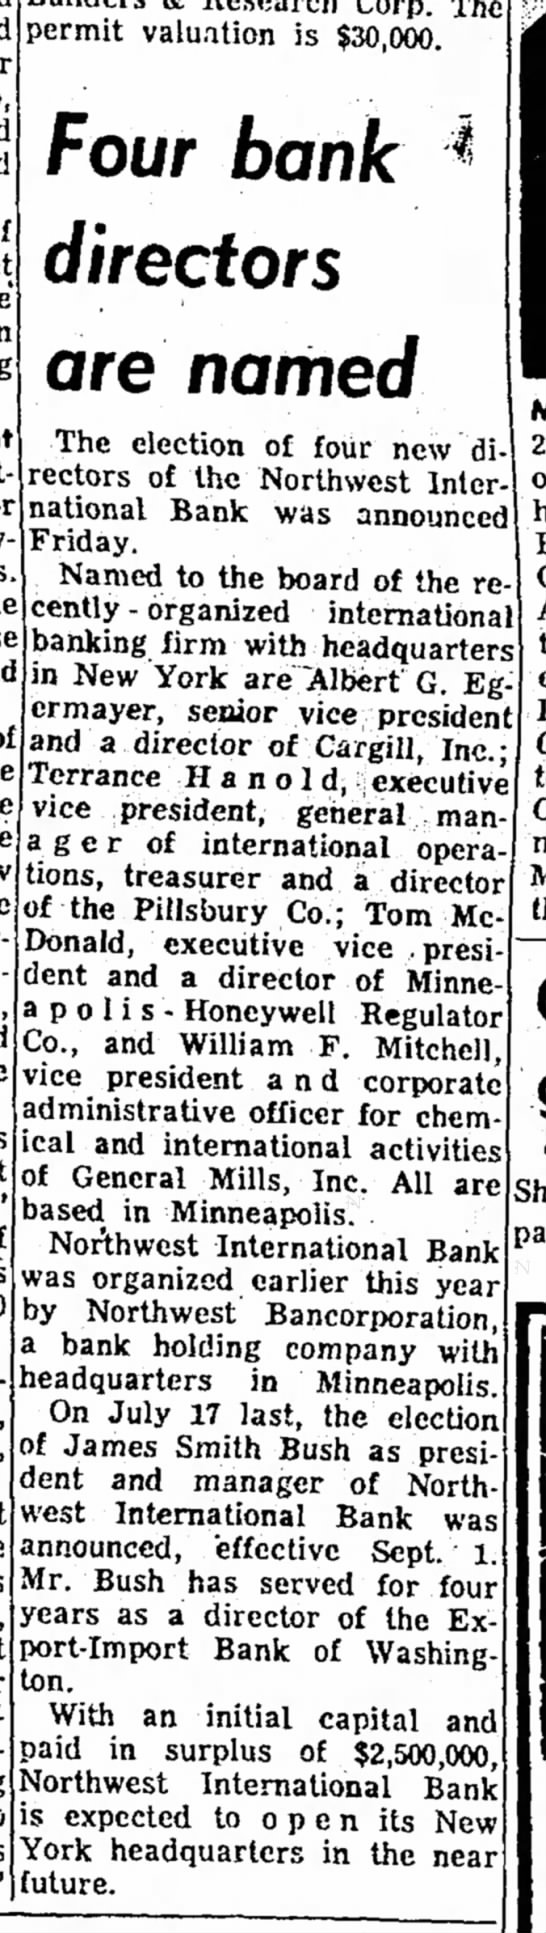 James Smith Bush-Director-NW Intern. Bank-Mason City Globe-p.17-3 Aug 1963 -